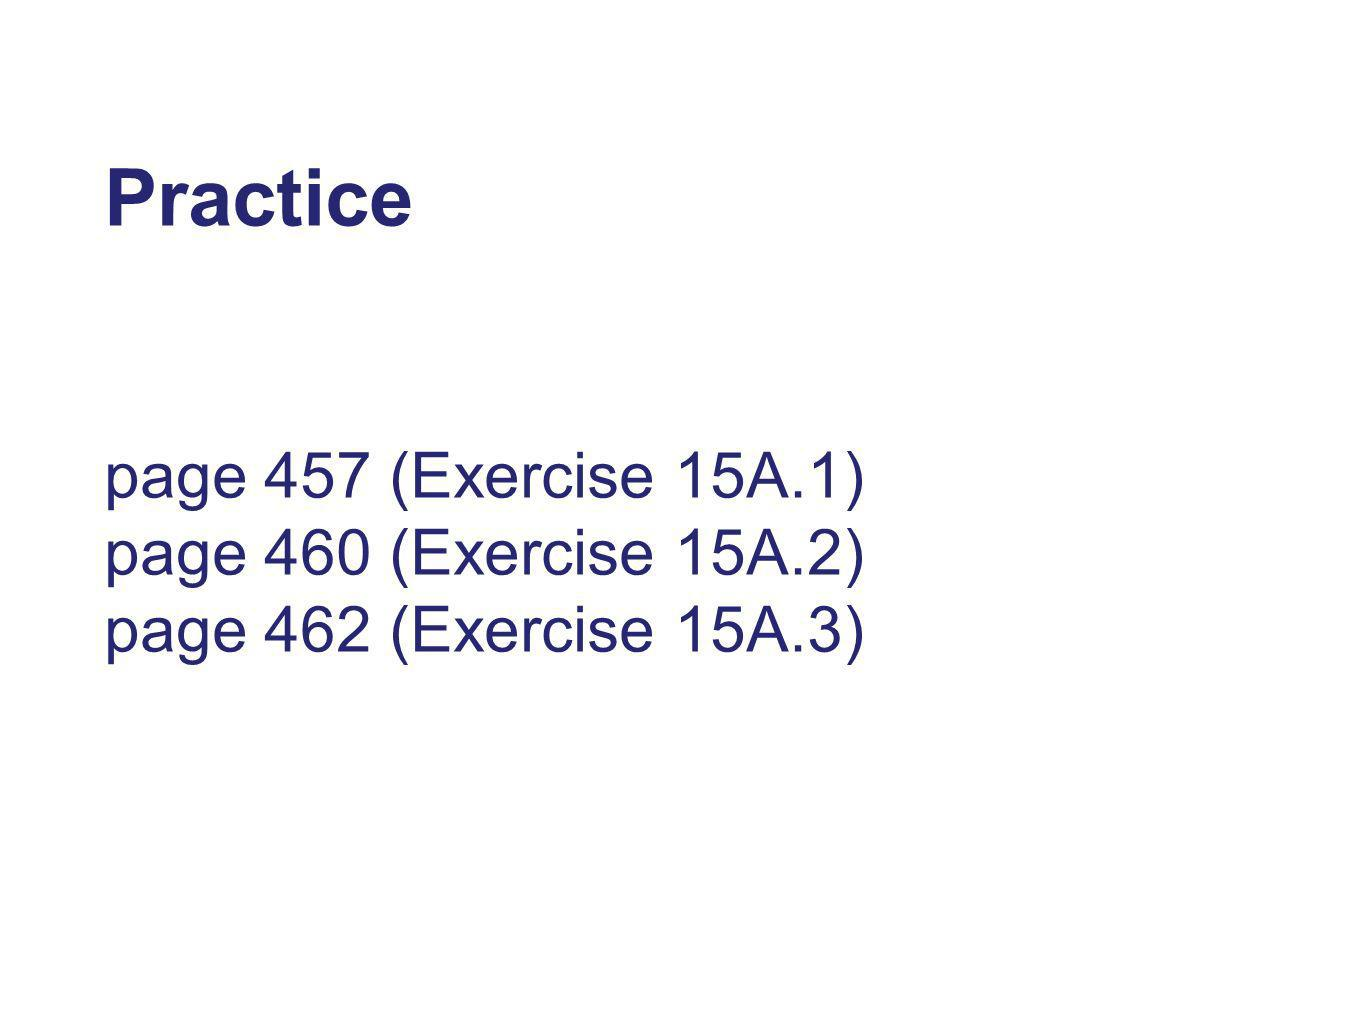 Practice page 457 (Exercise 15A.1) page 460 (Exercise 15A.2) page 462 (Exercise 15A.3)